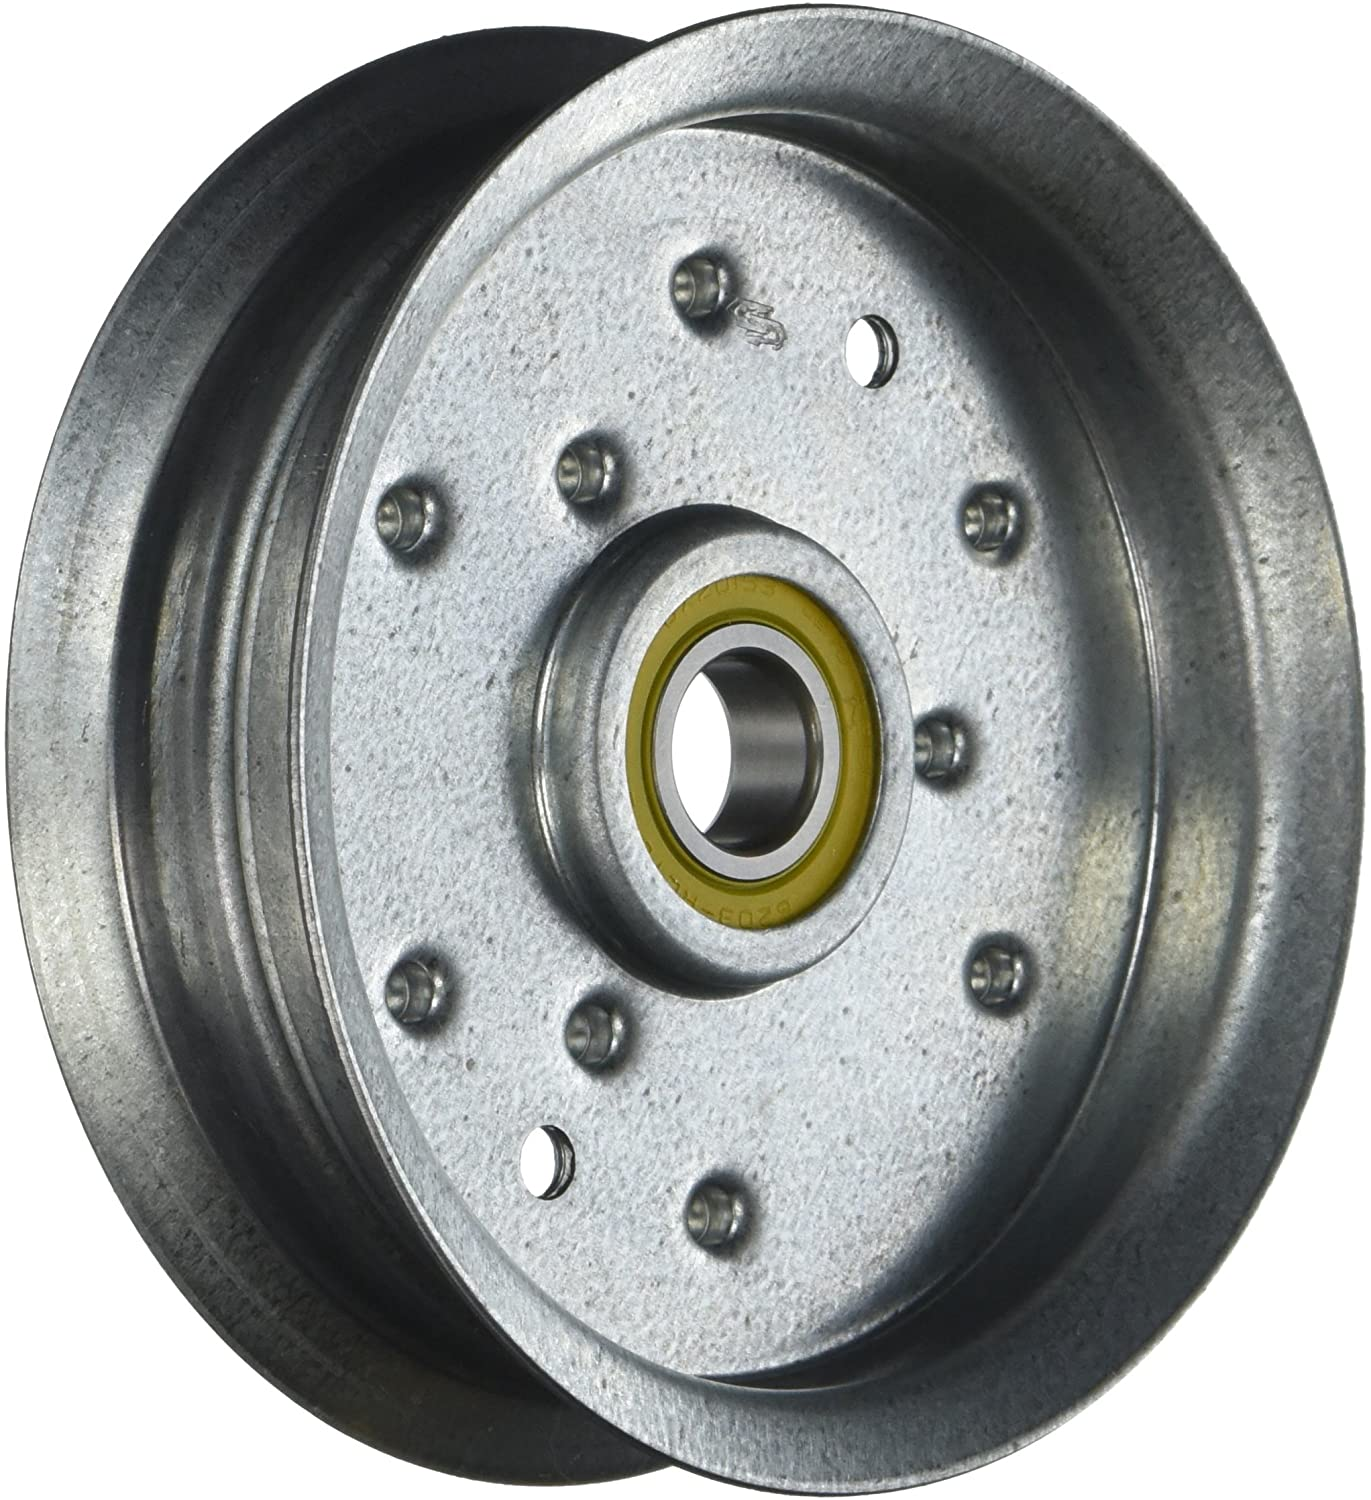 Maxpower 332521B Idler Pulley Replaces John Deere GY20110, GY20629, GY20639